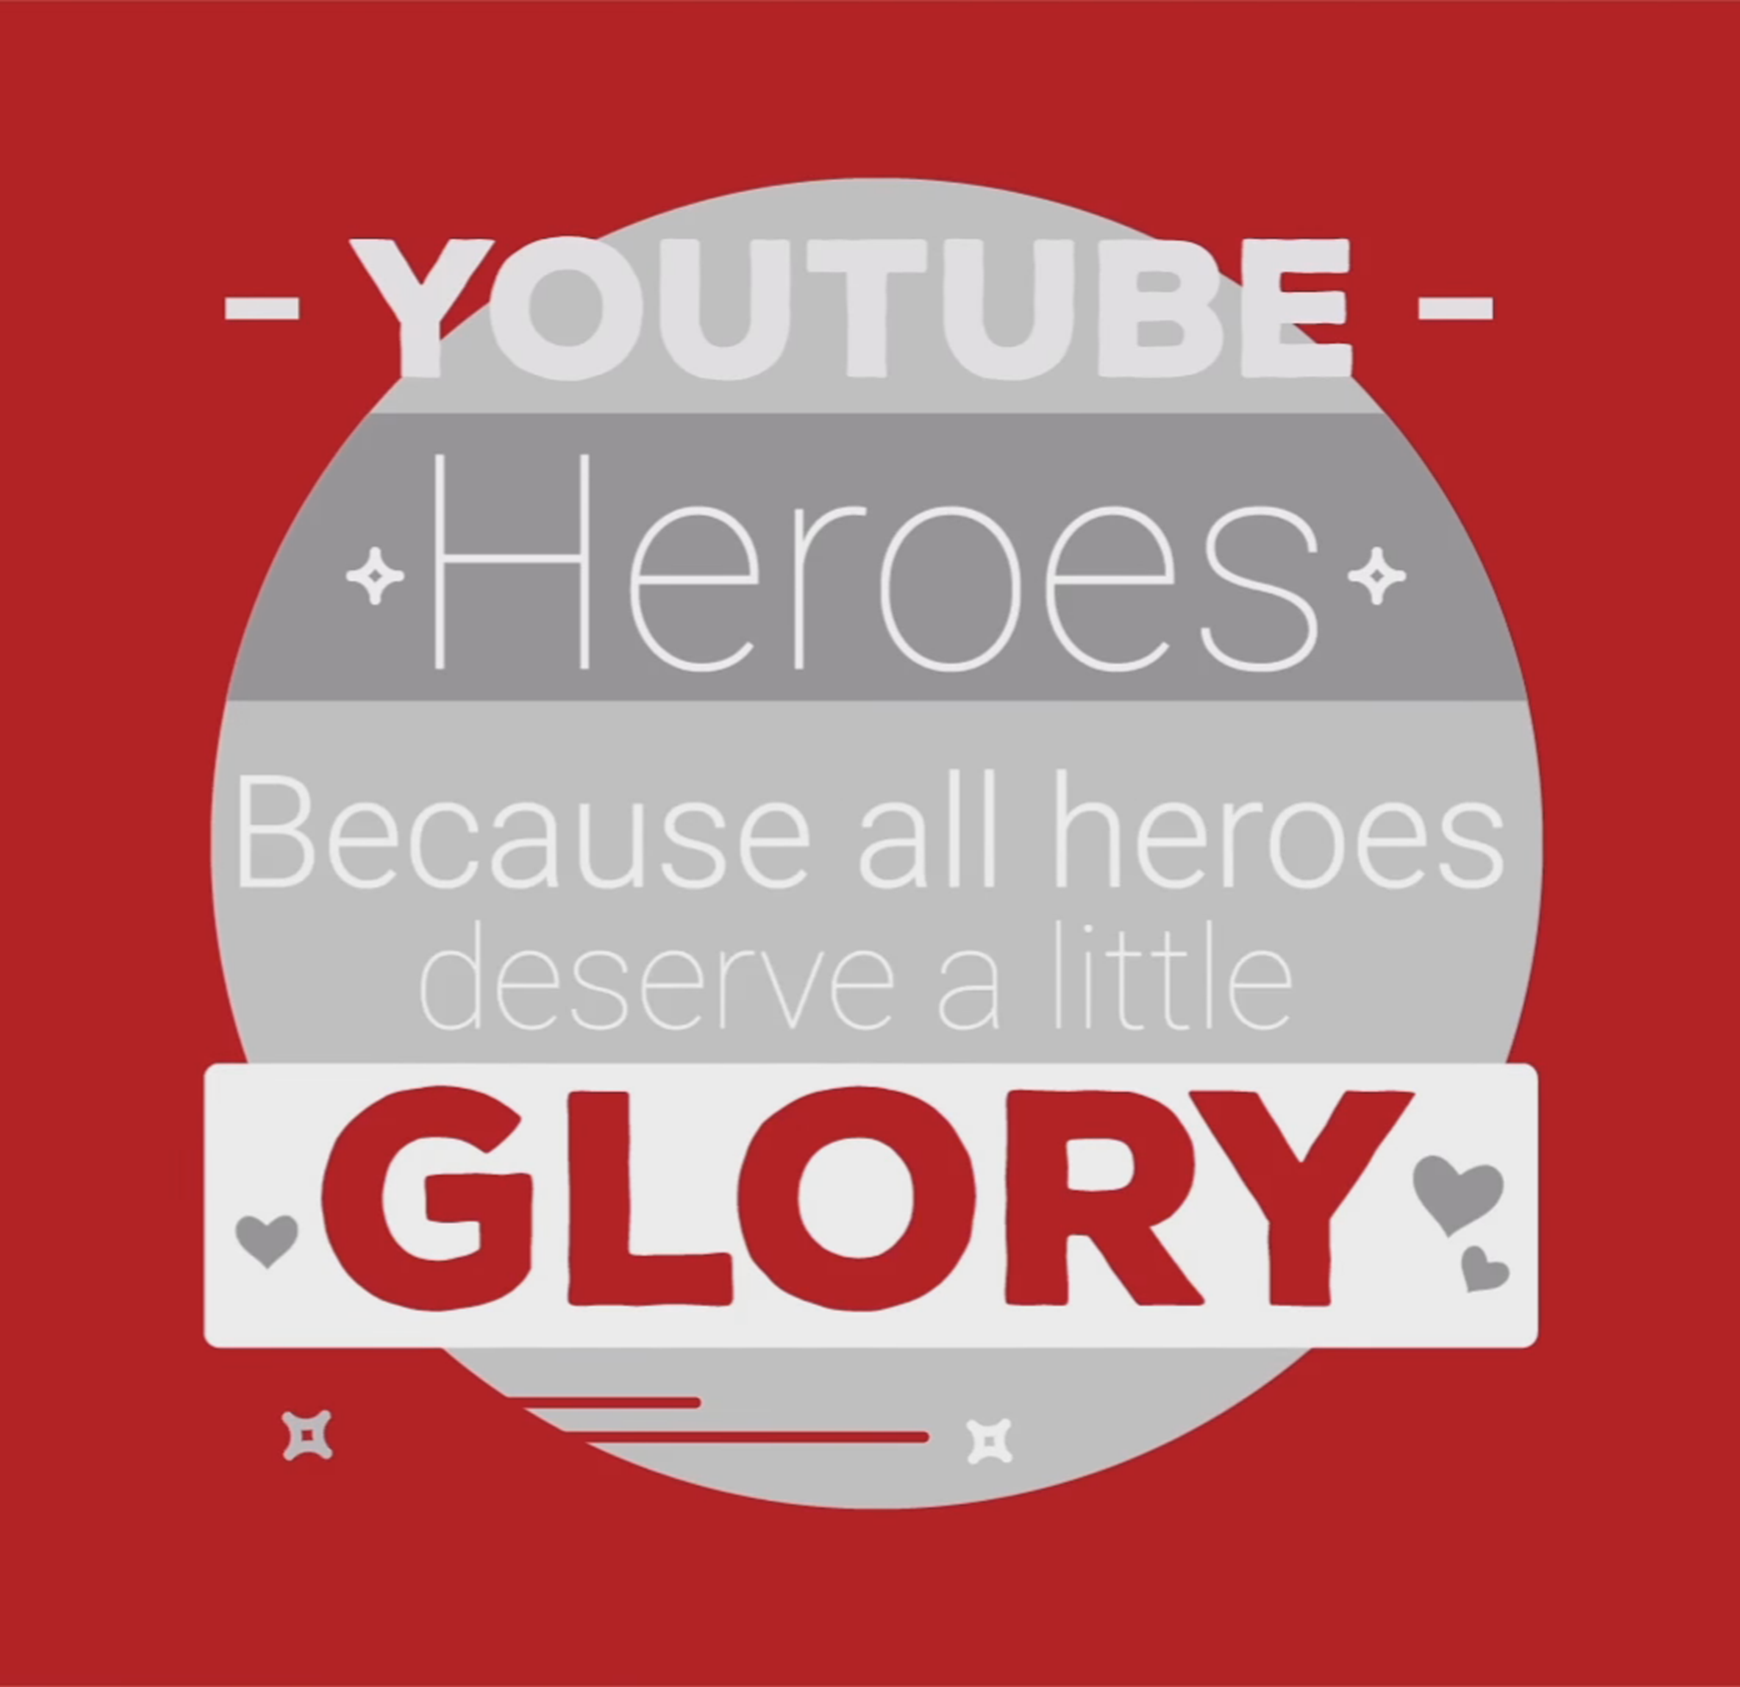 Youtube heroes controversy know your meme youtube heroes controversy ccuart Gallery